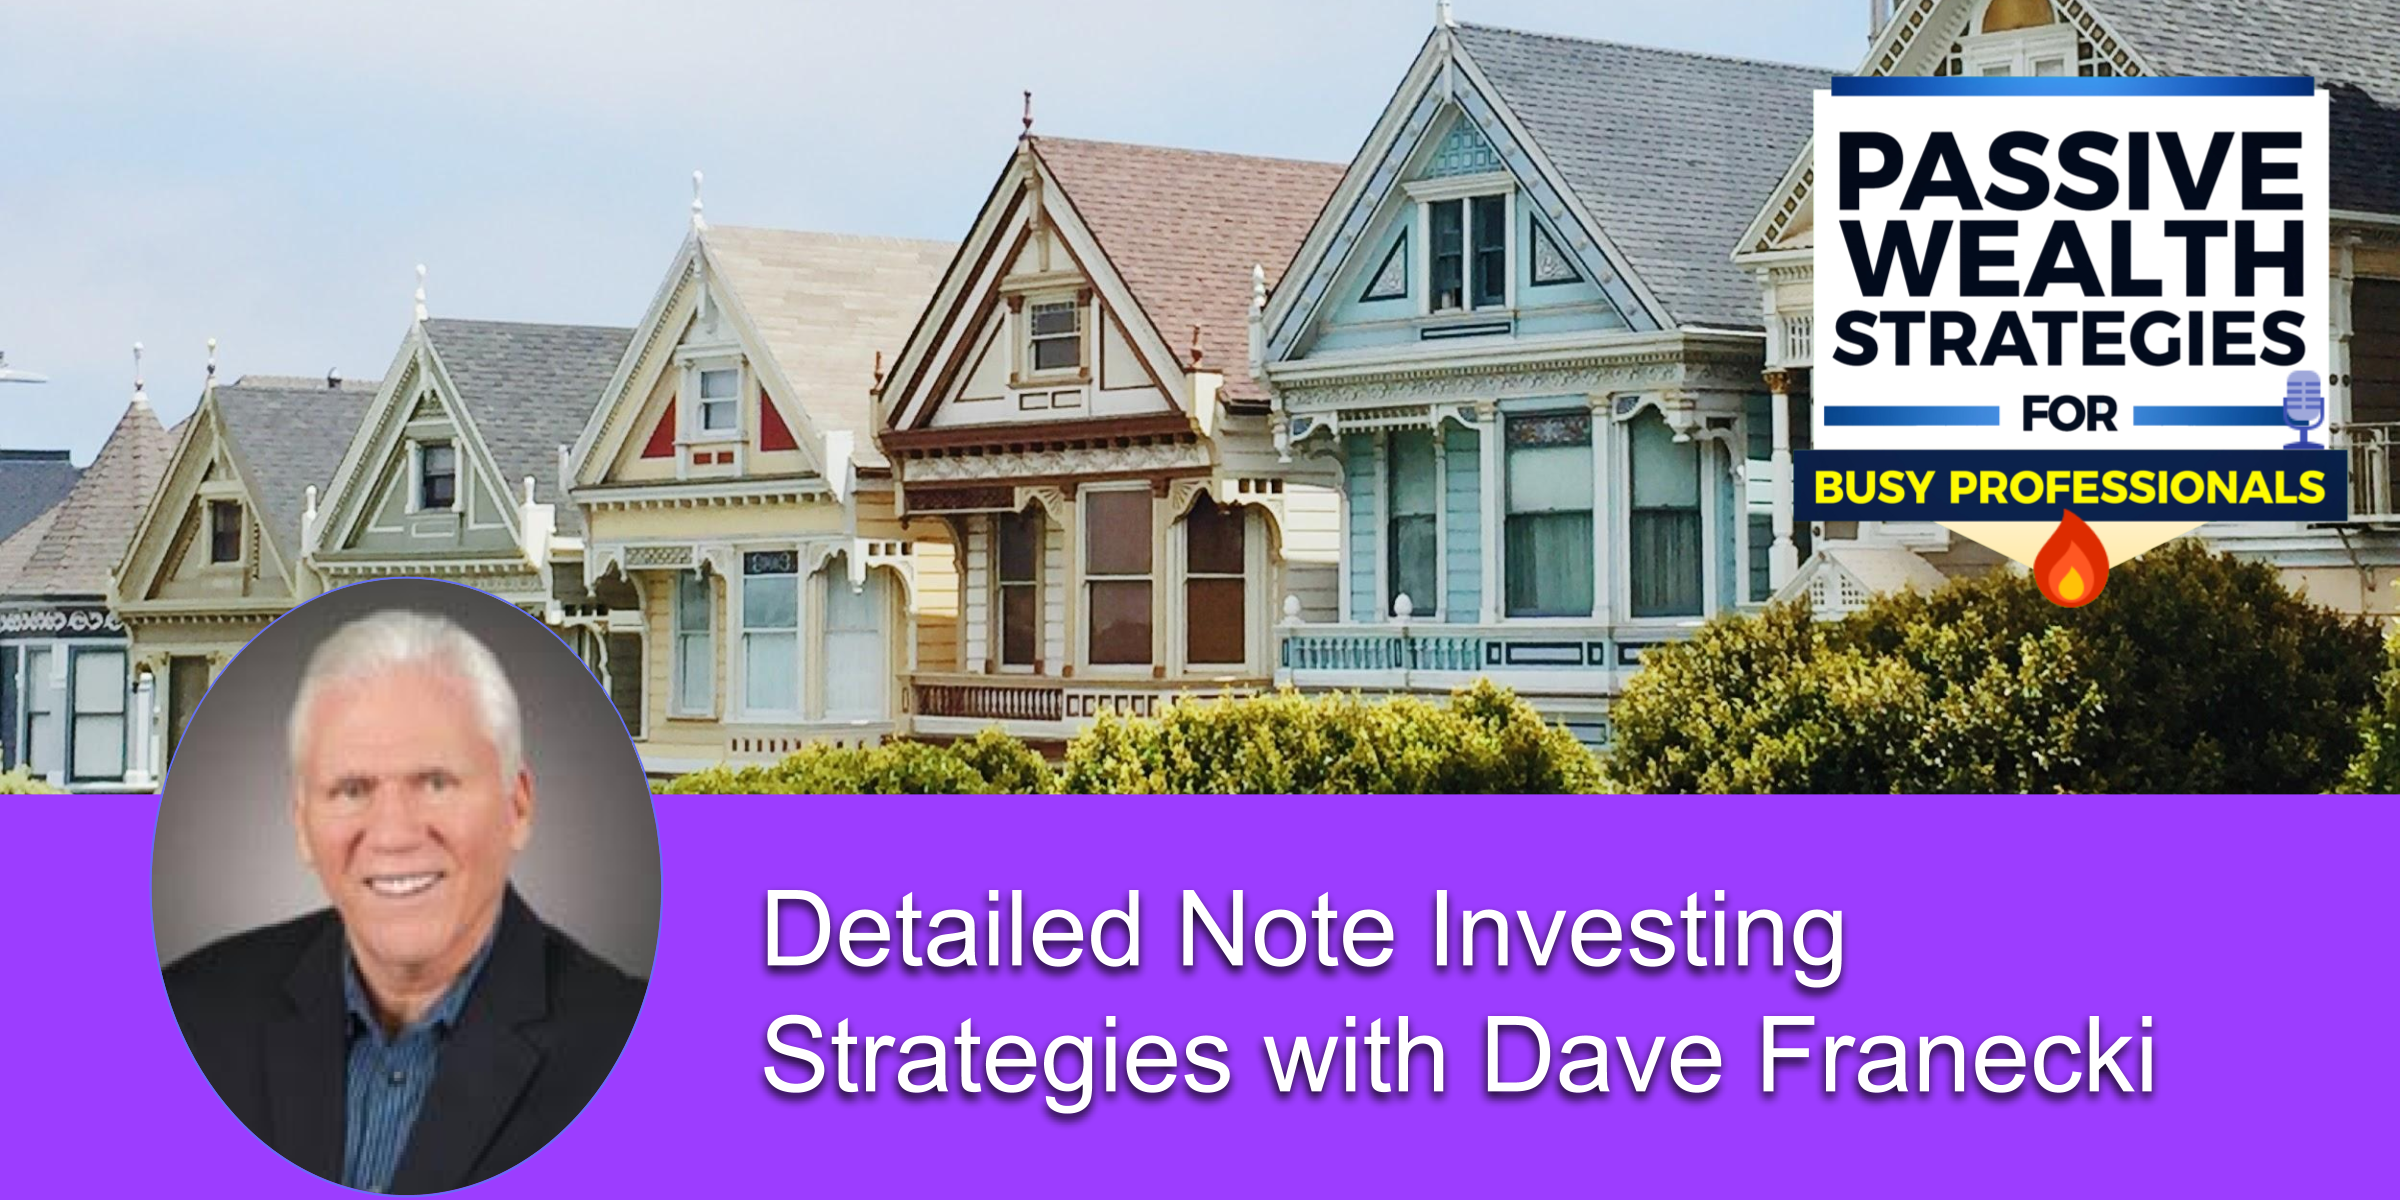 Detailed Note Investing Strategies with Dave Franecki